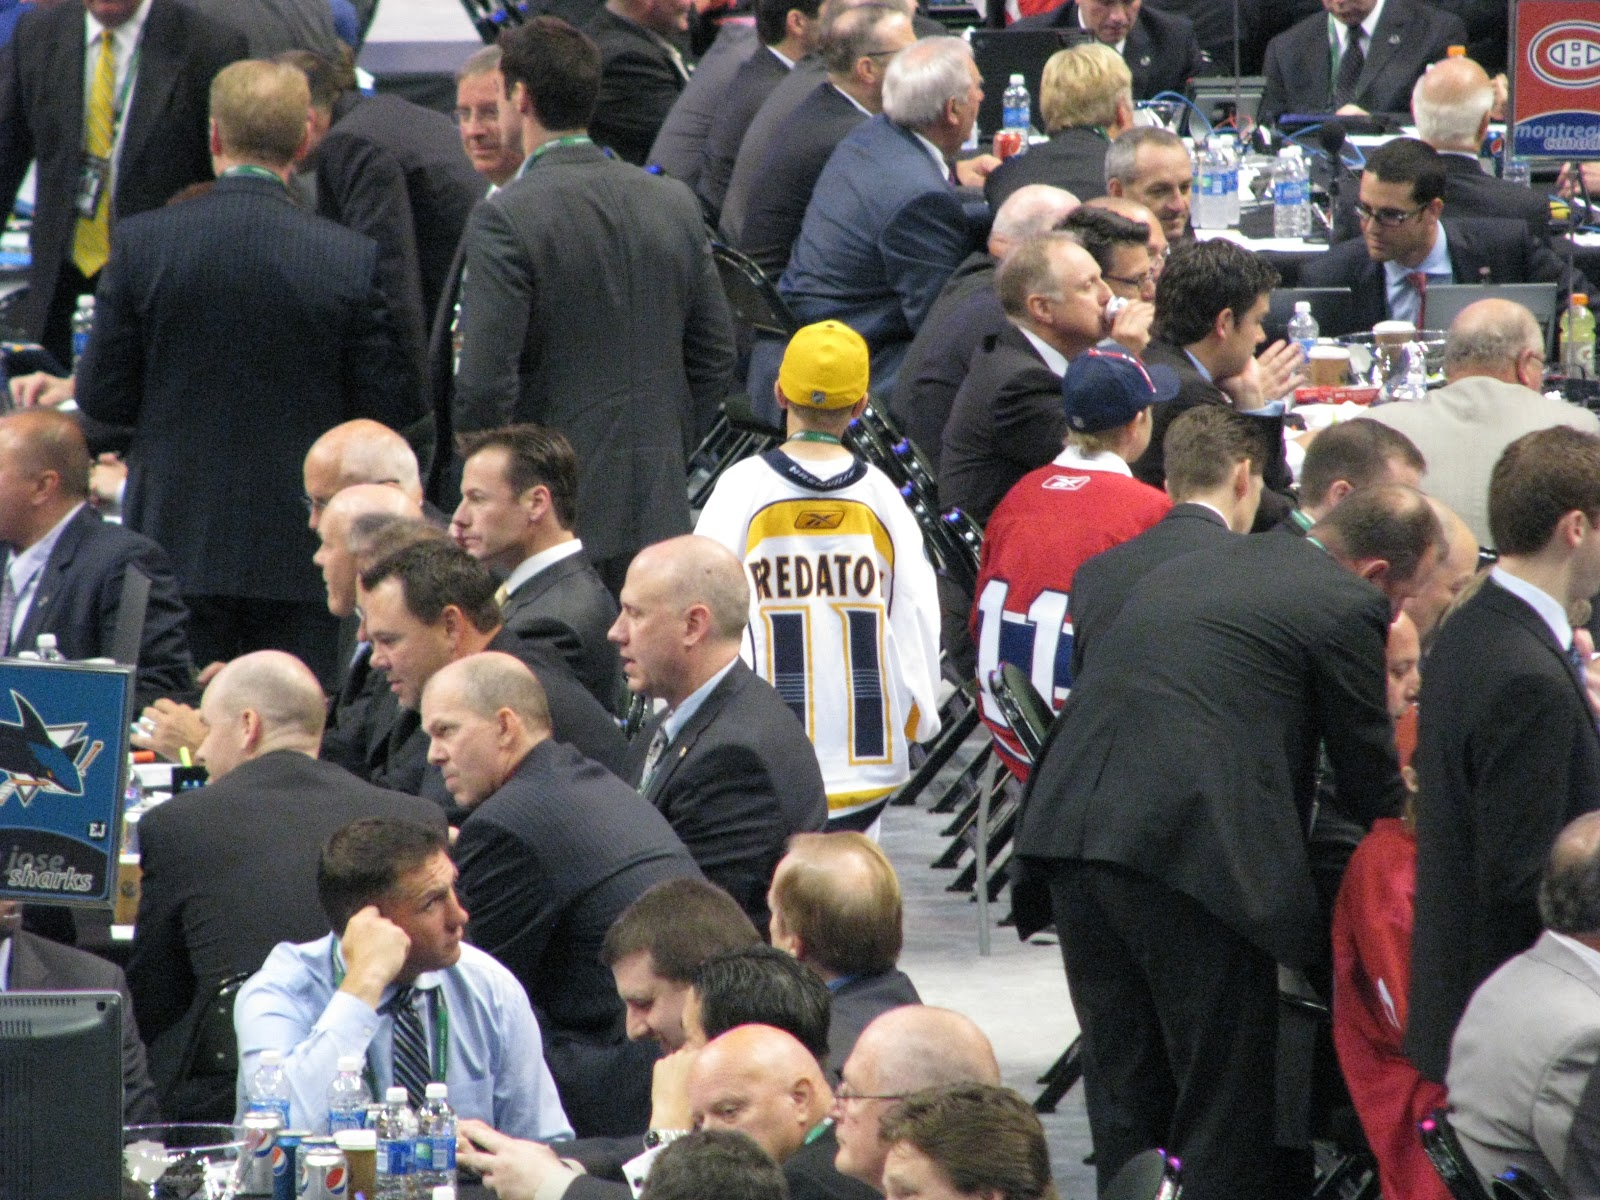 d9f0c754e The Nashville Predators, who kinda-sorta had their new jersey's leaked on  Thursday, had some fans in attendance at the NHL ...